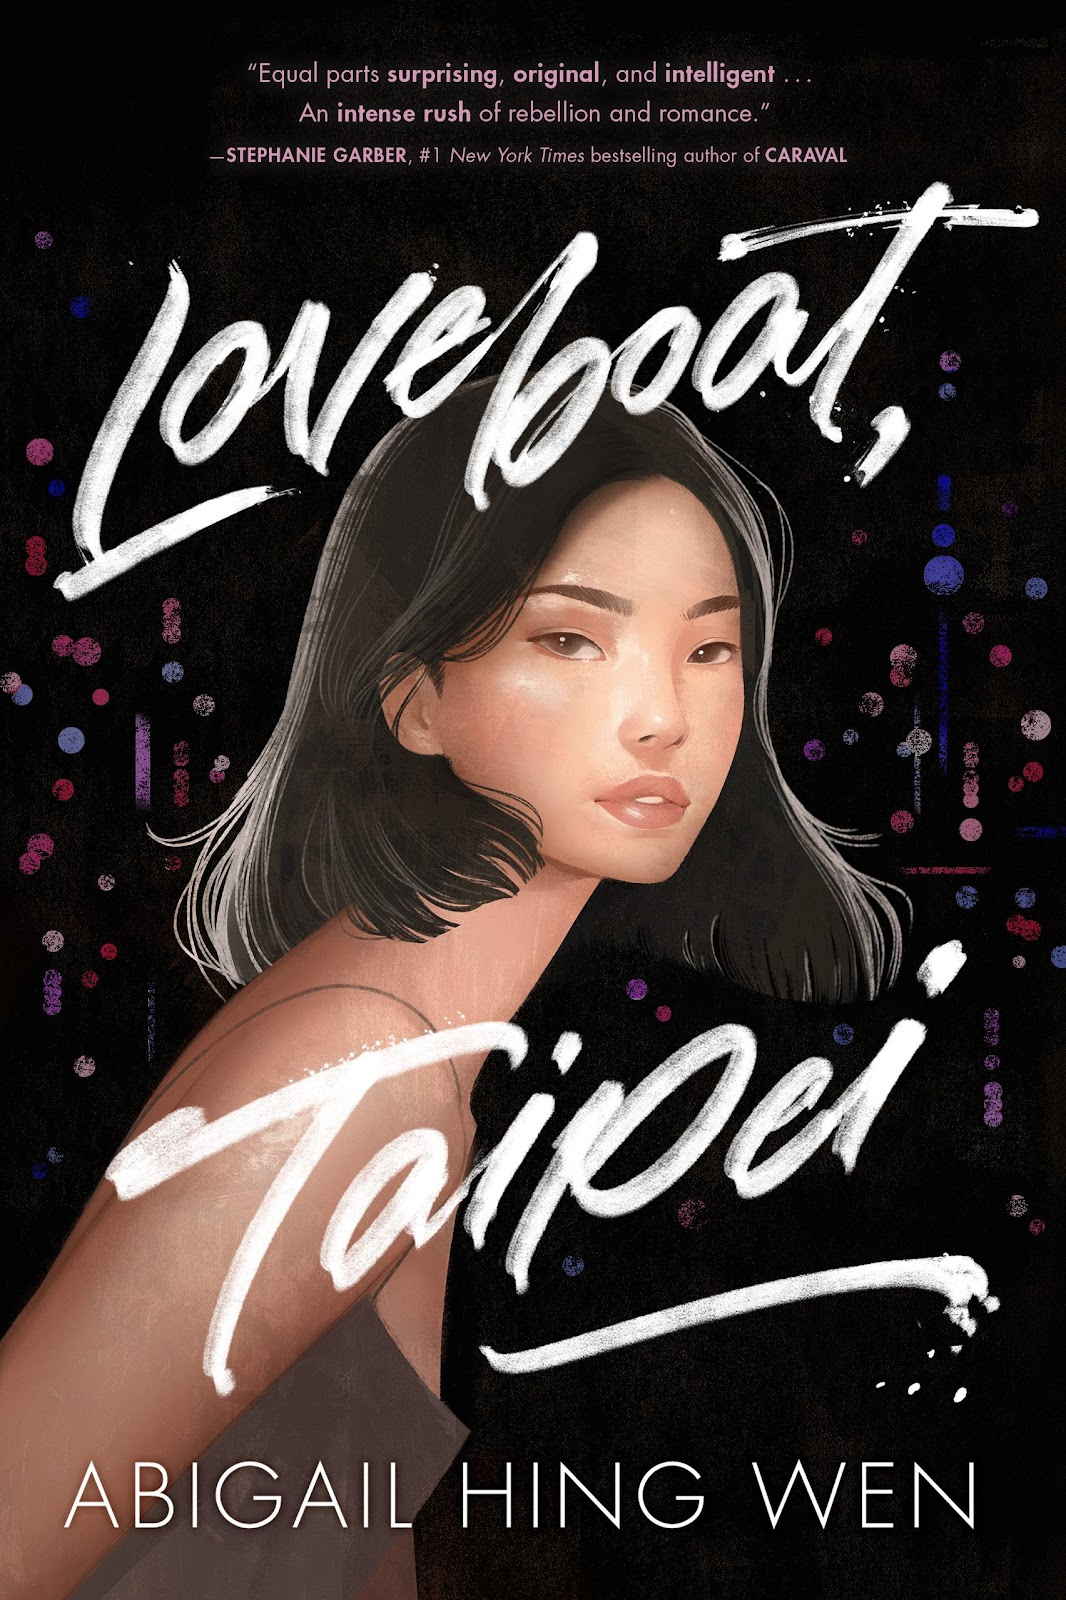 Loveboat, Taipei (Loveboat, Taipei, #1) by Abigail Hing Wen